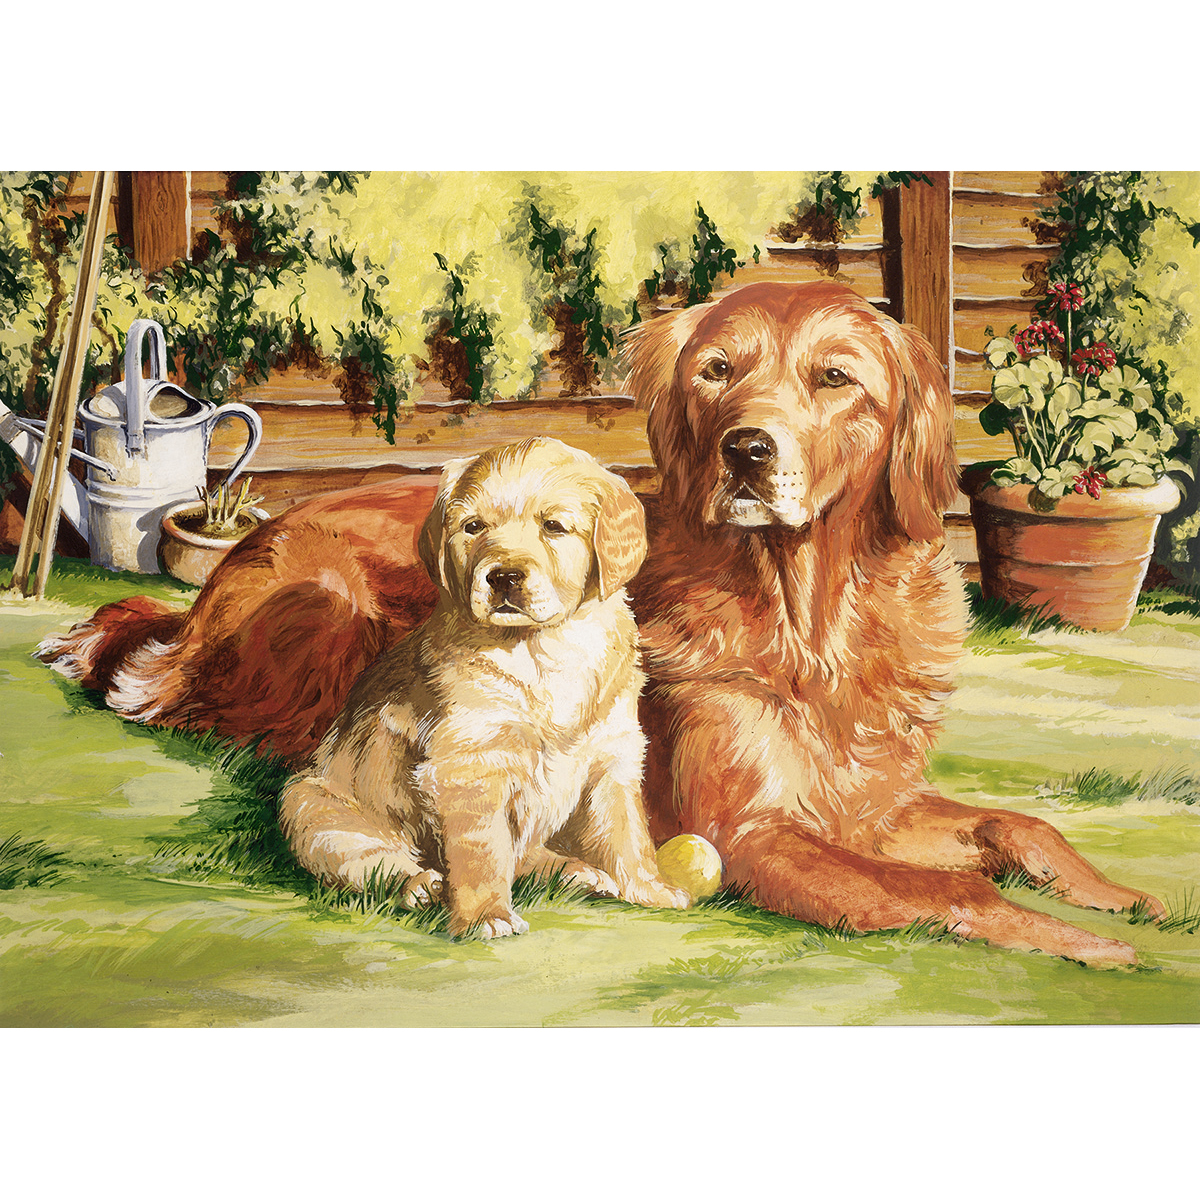 Reeves Paint By Number Kit Dog World